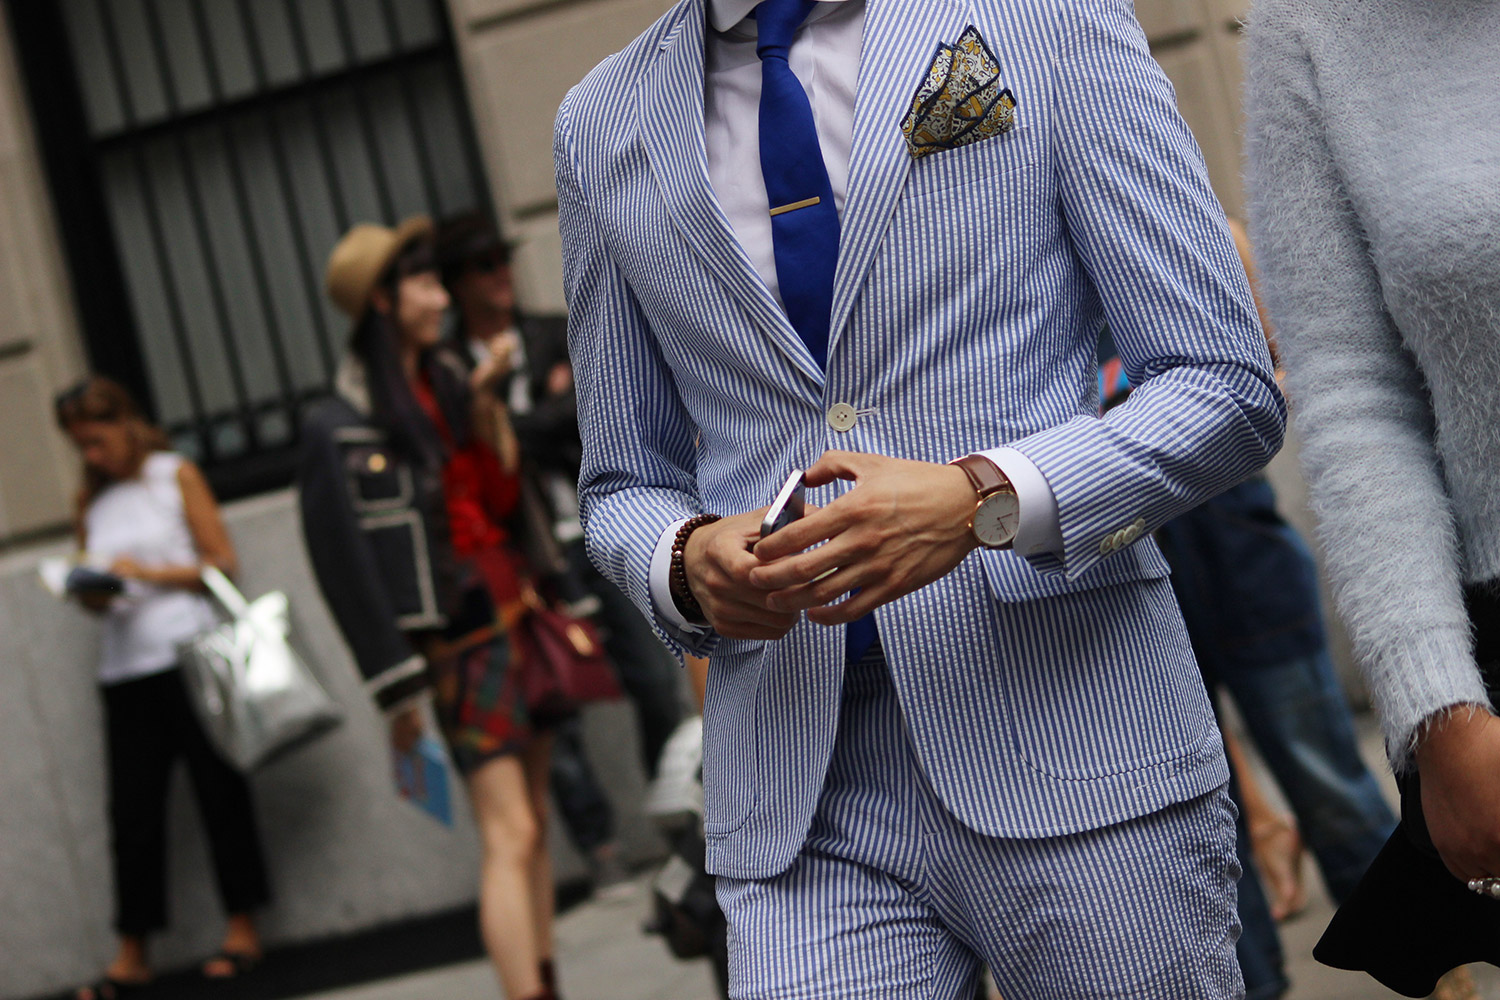 new-york-fashion-week-spring-summer-2015-street-style-5-12